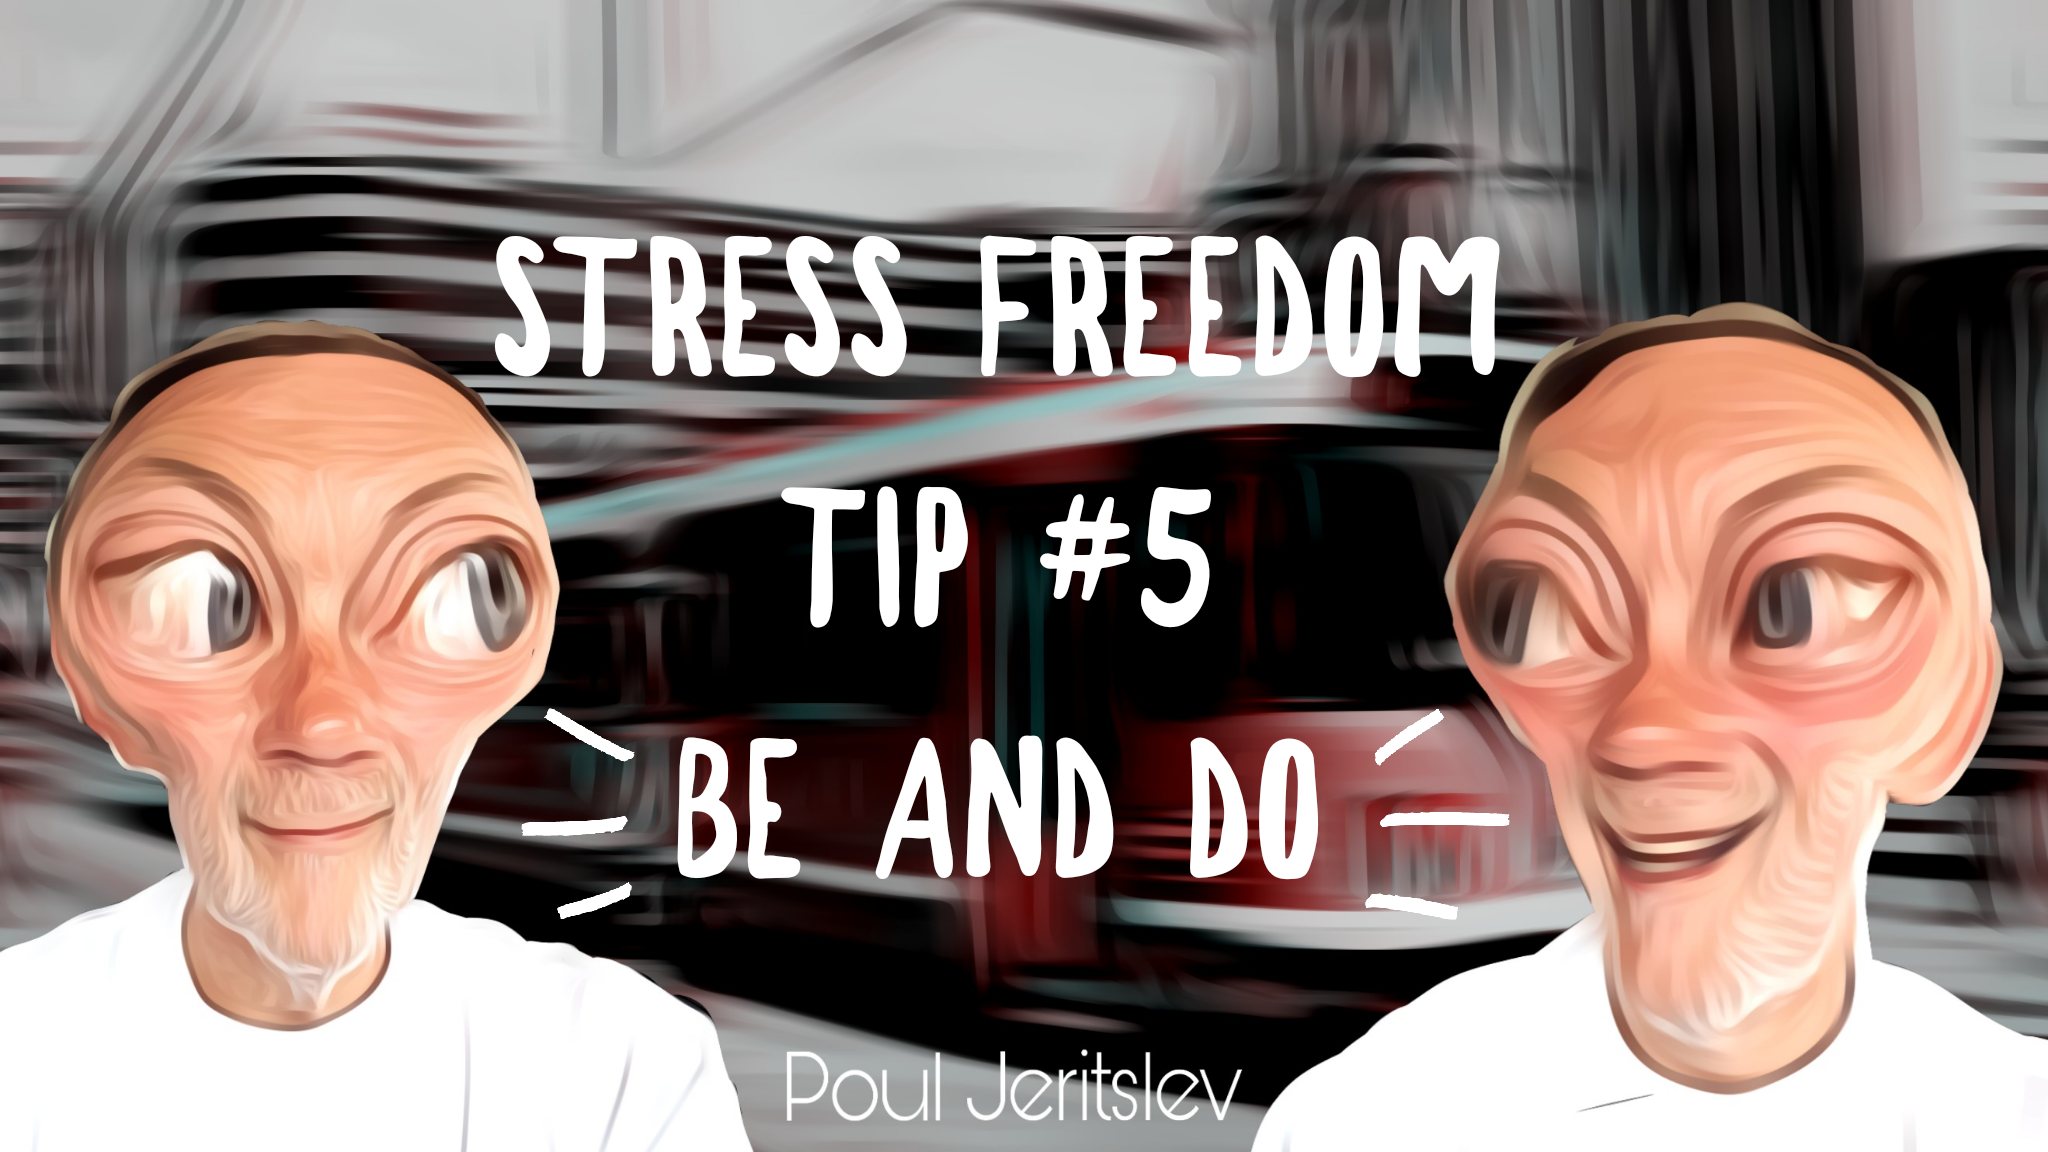 Stress Freedom TIP #5